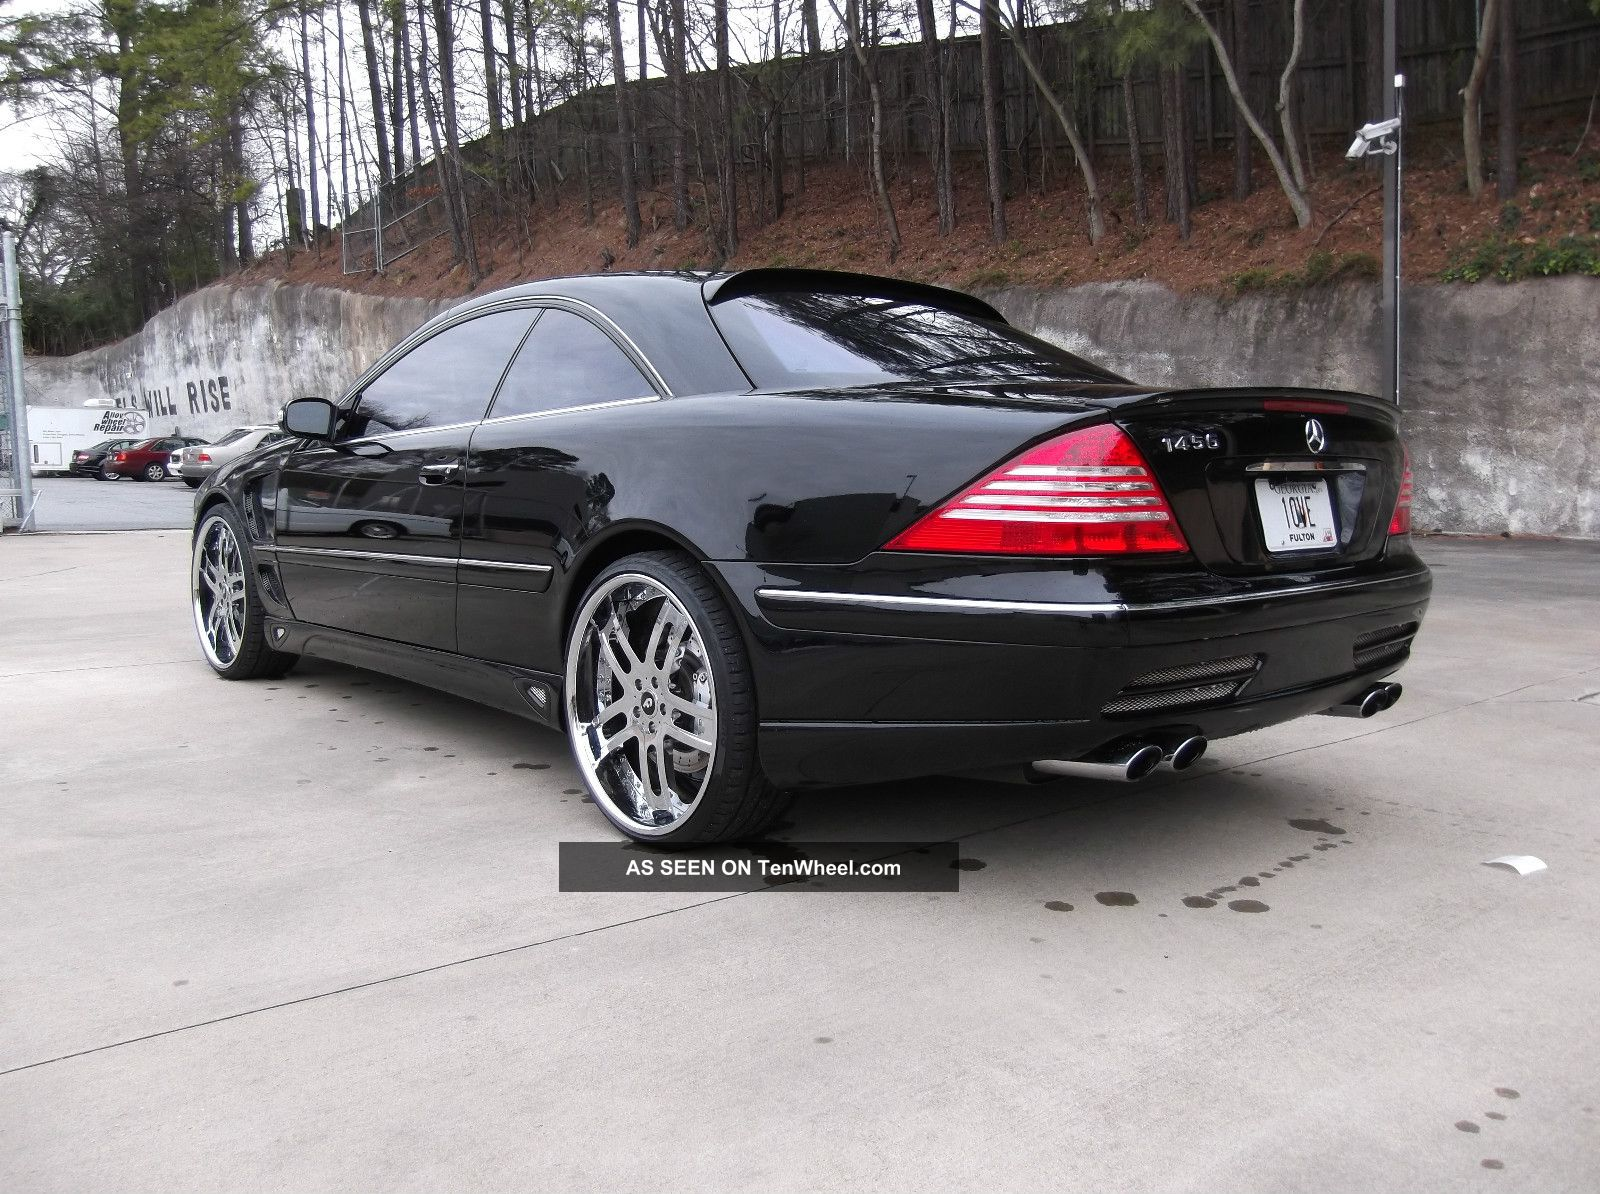 2006 mercedes benz cl65 amg renntech r3 700 hp 900 tq. Black Bedroom Furniture Sets. Home Design Ideas